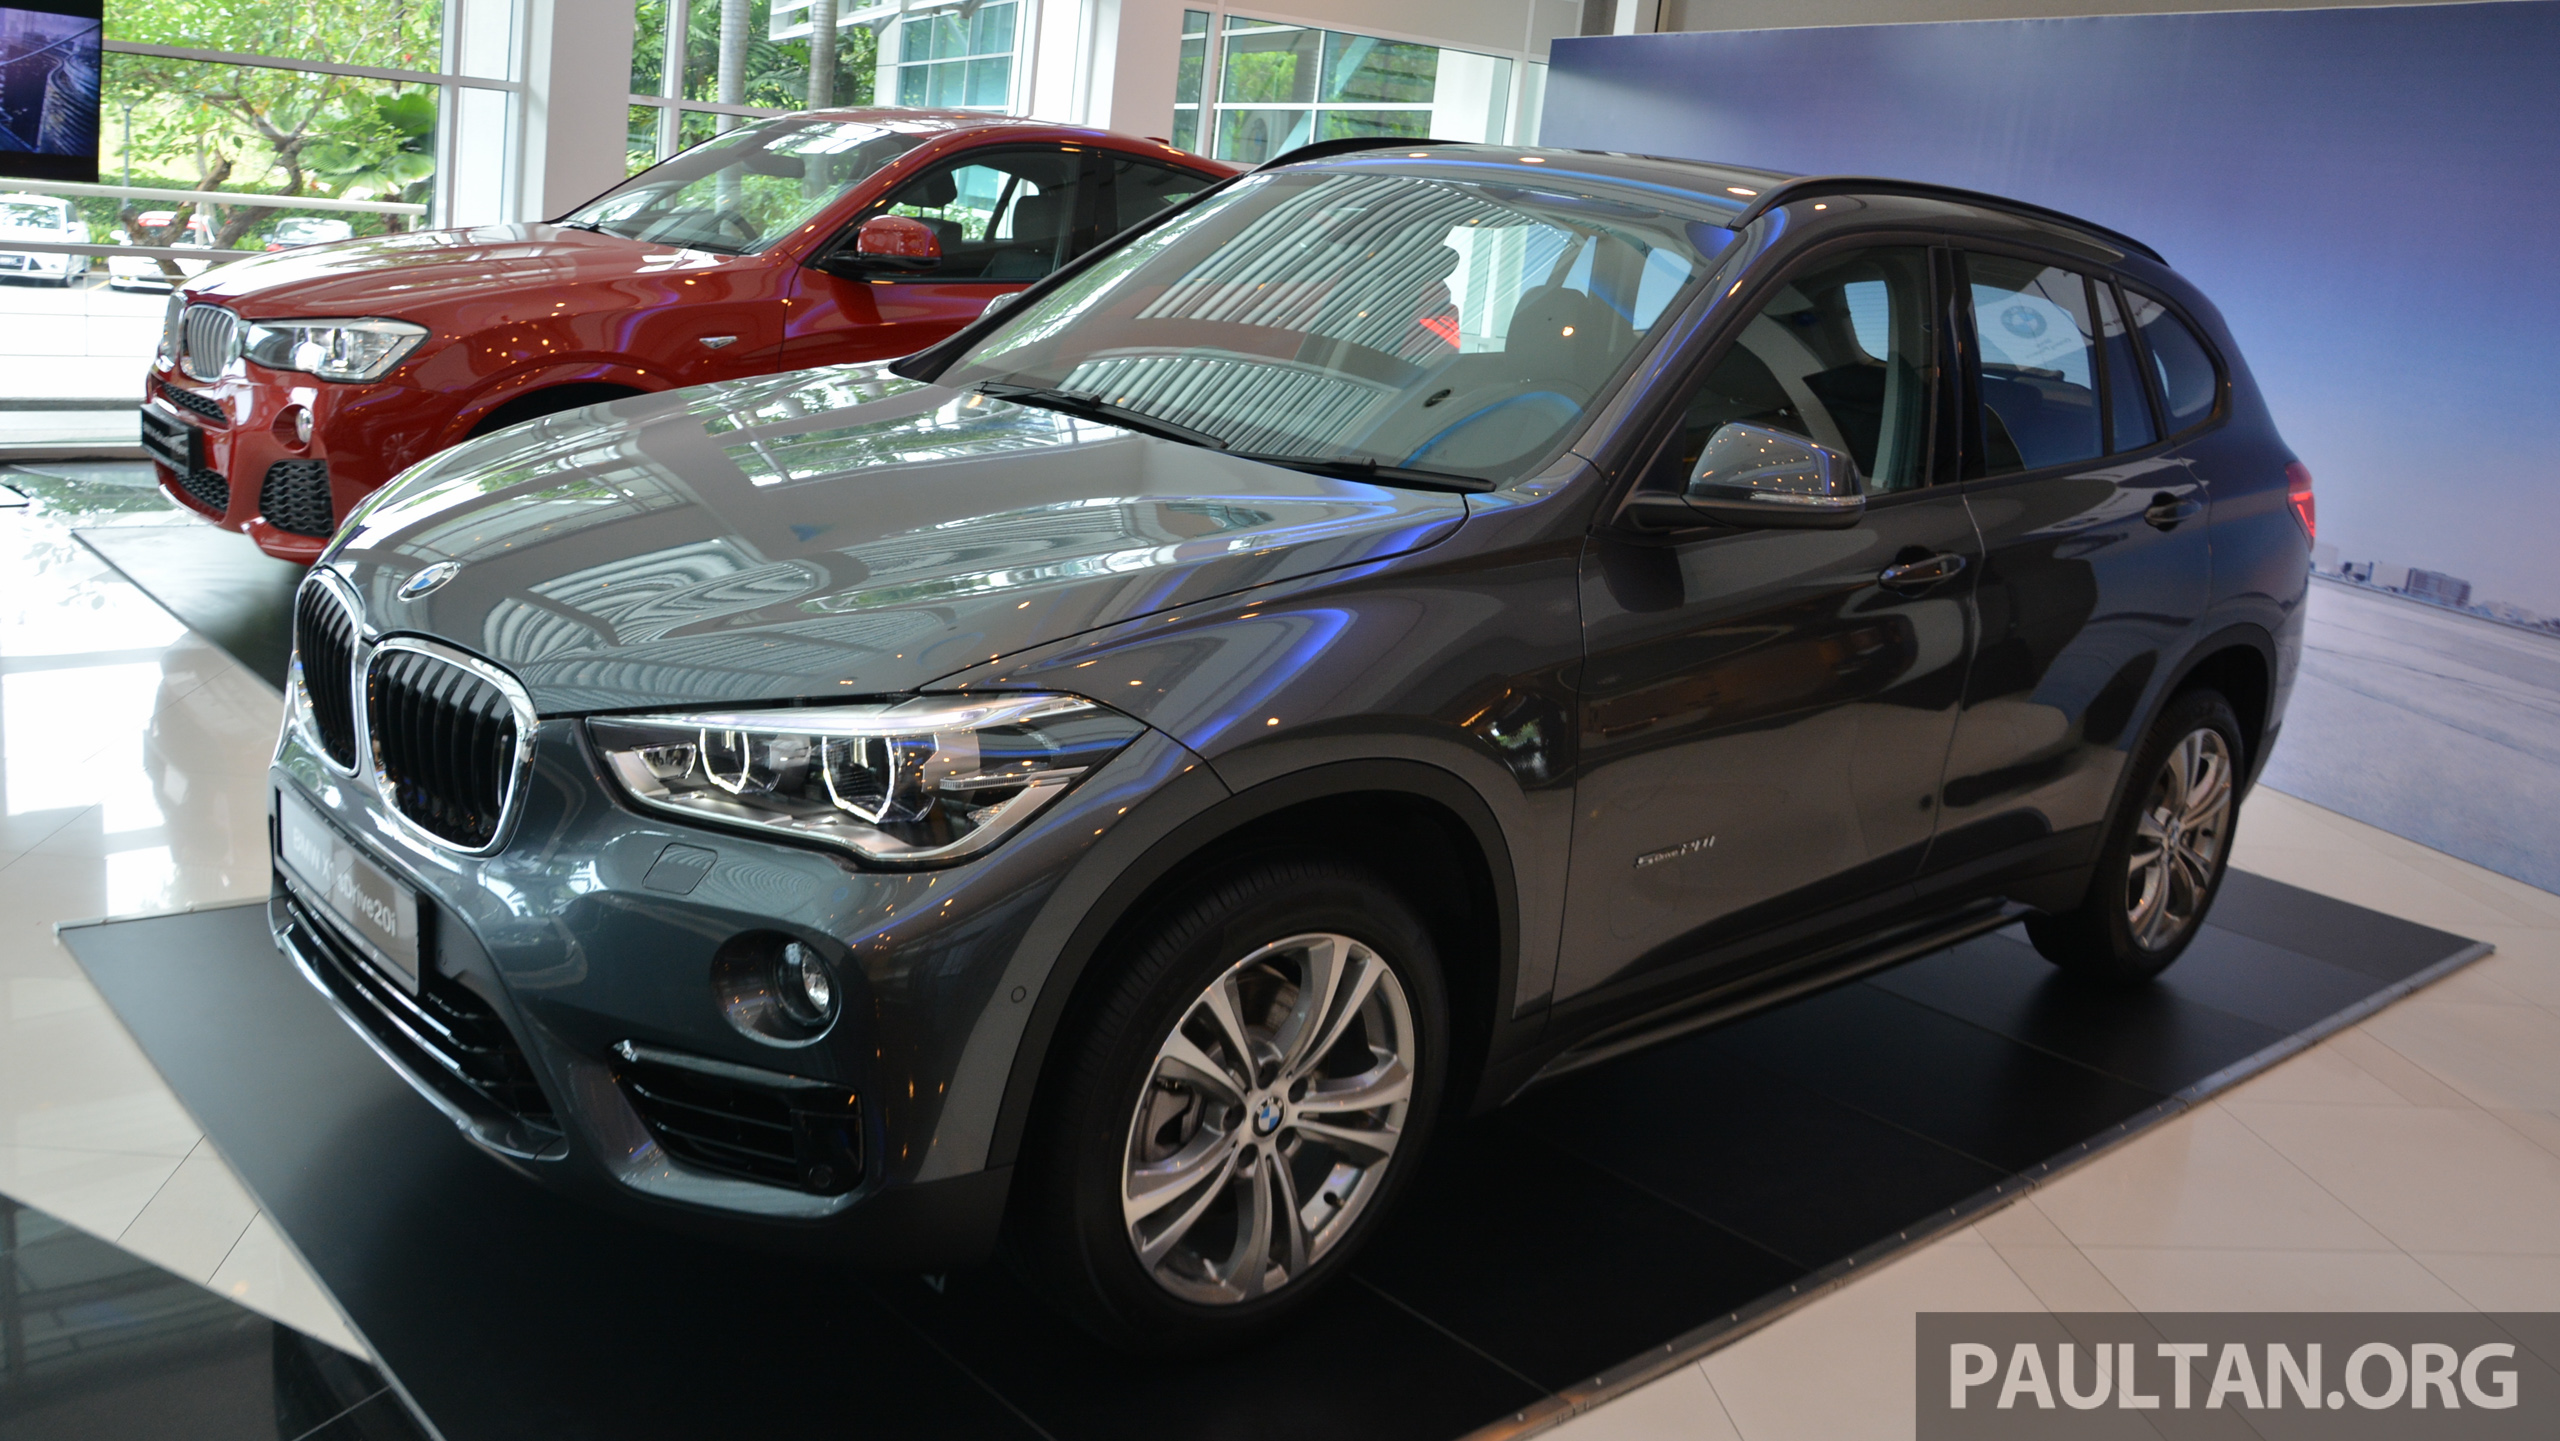 bmw malaysia announces local assembly for the f48 bmw x1 and f26 bmw x4 production from mid. Black Bedroom Furniture Sets. Home Design Ideas